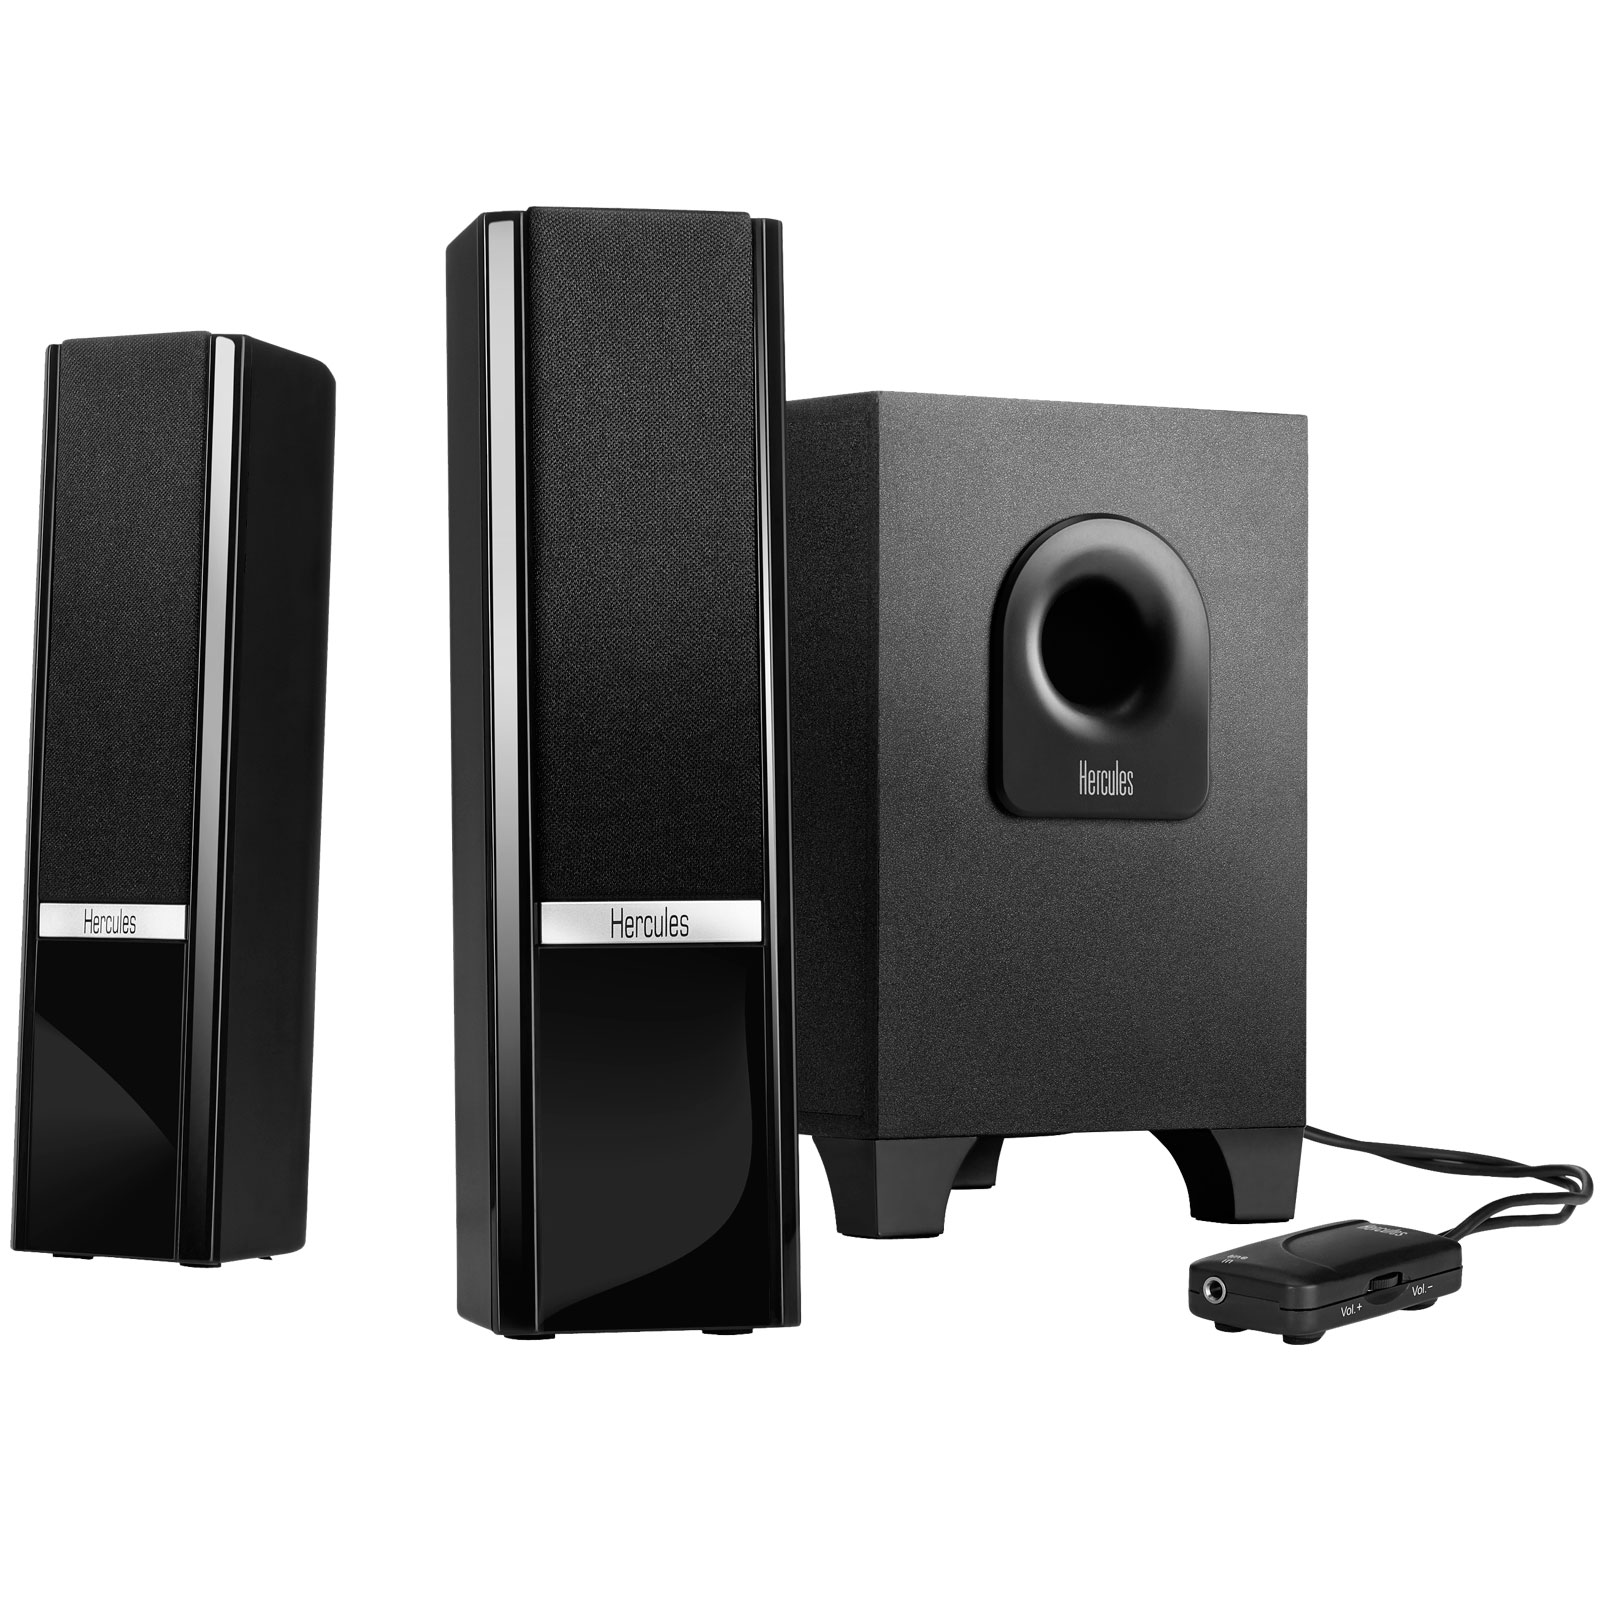 hercules 2 1 gloss enceinte pc hercules sur. Black Bedroom Furniture Sets. Home Design Ideas